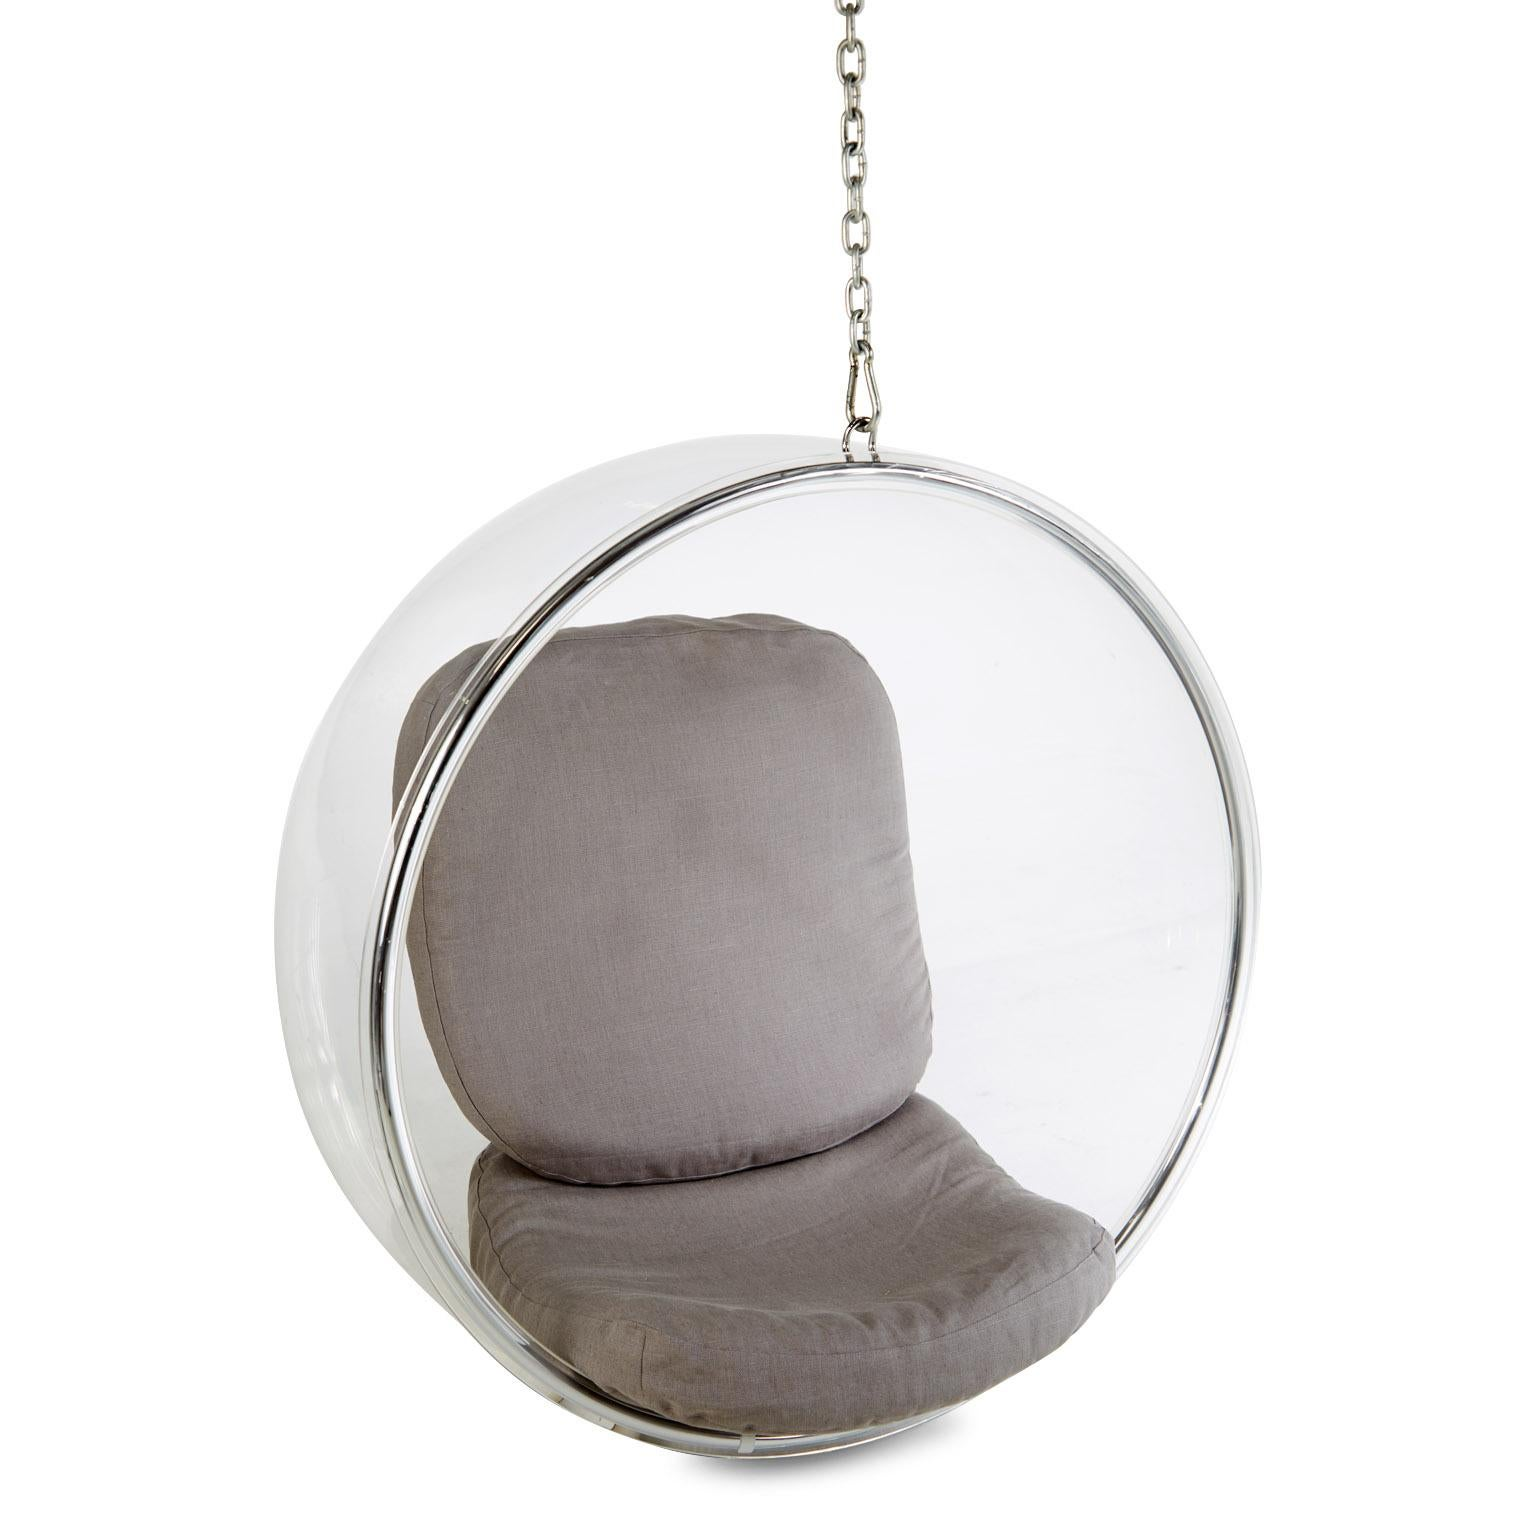 eero aarnio bubble chair small desk chairs without wheels for adelta lucite hanging sale at 1stdibs